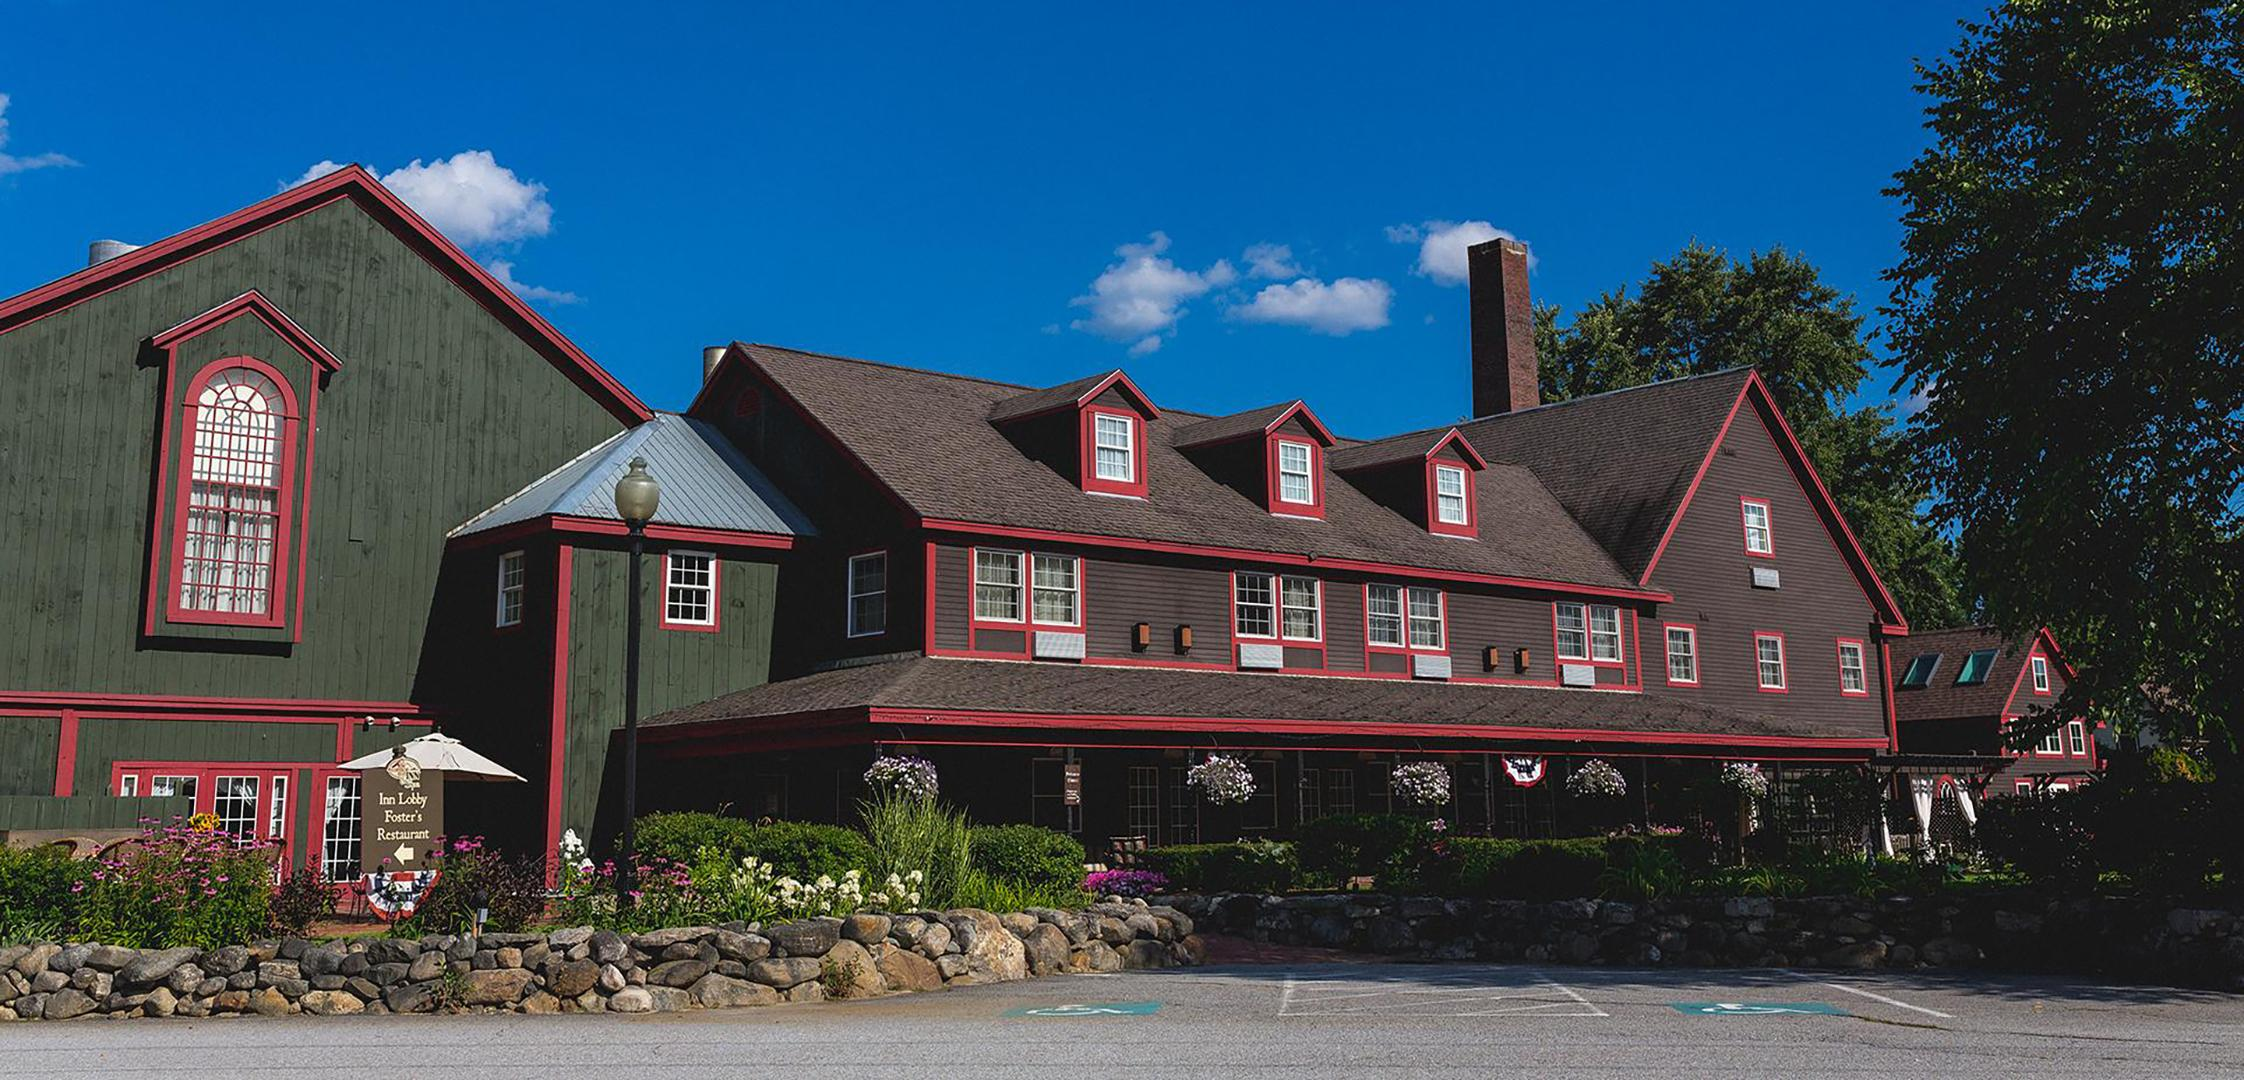 Lodging In Plymouth Nh Unique Vacations Getaways At The Common Man Inn Spa